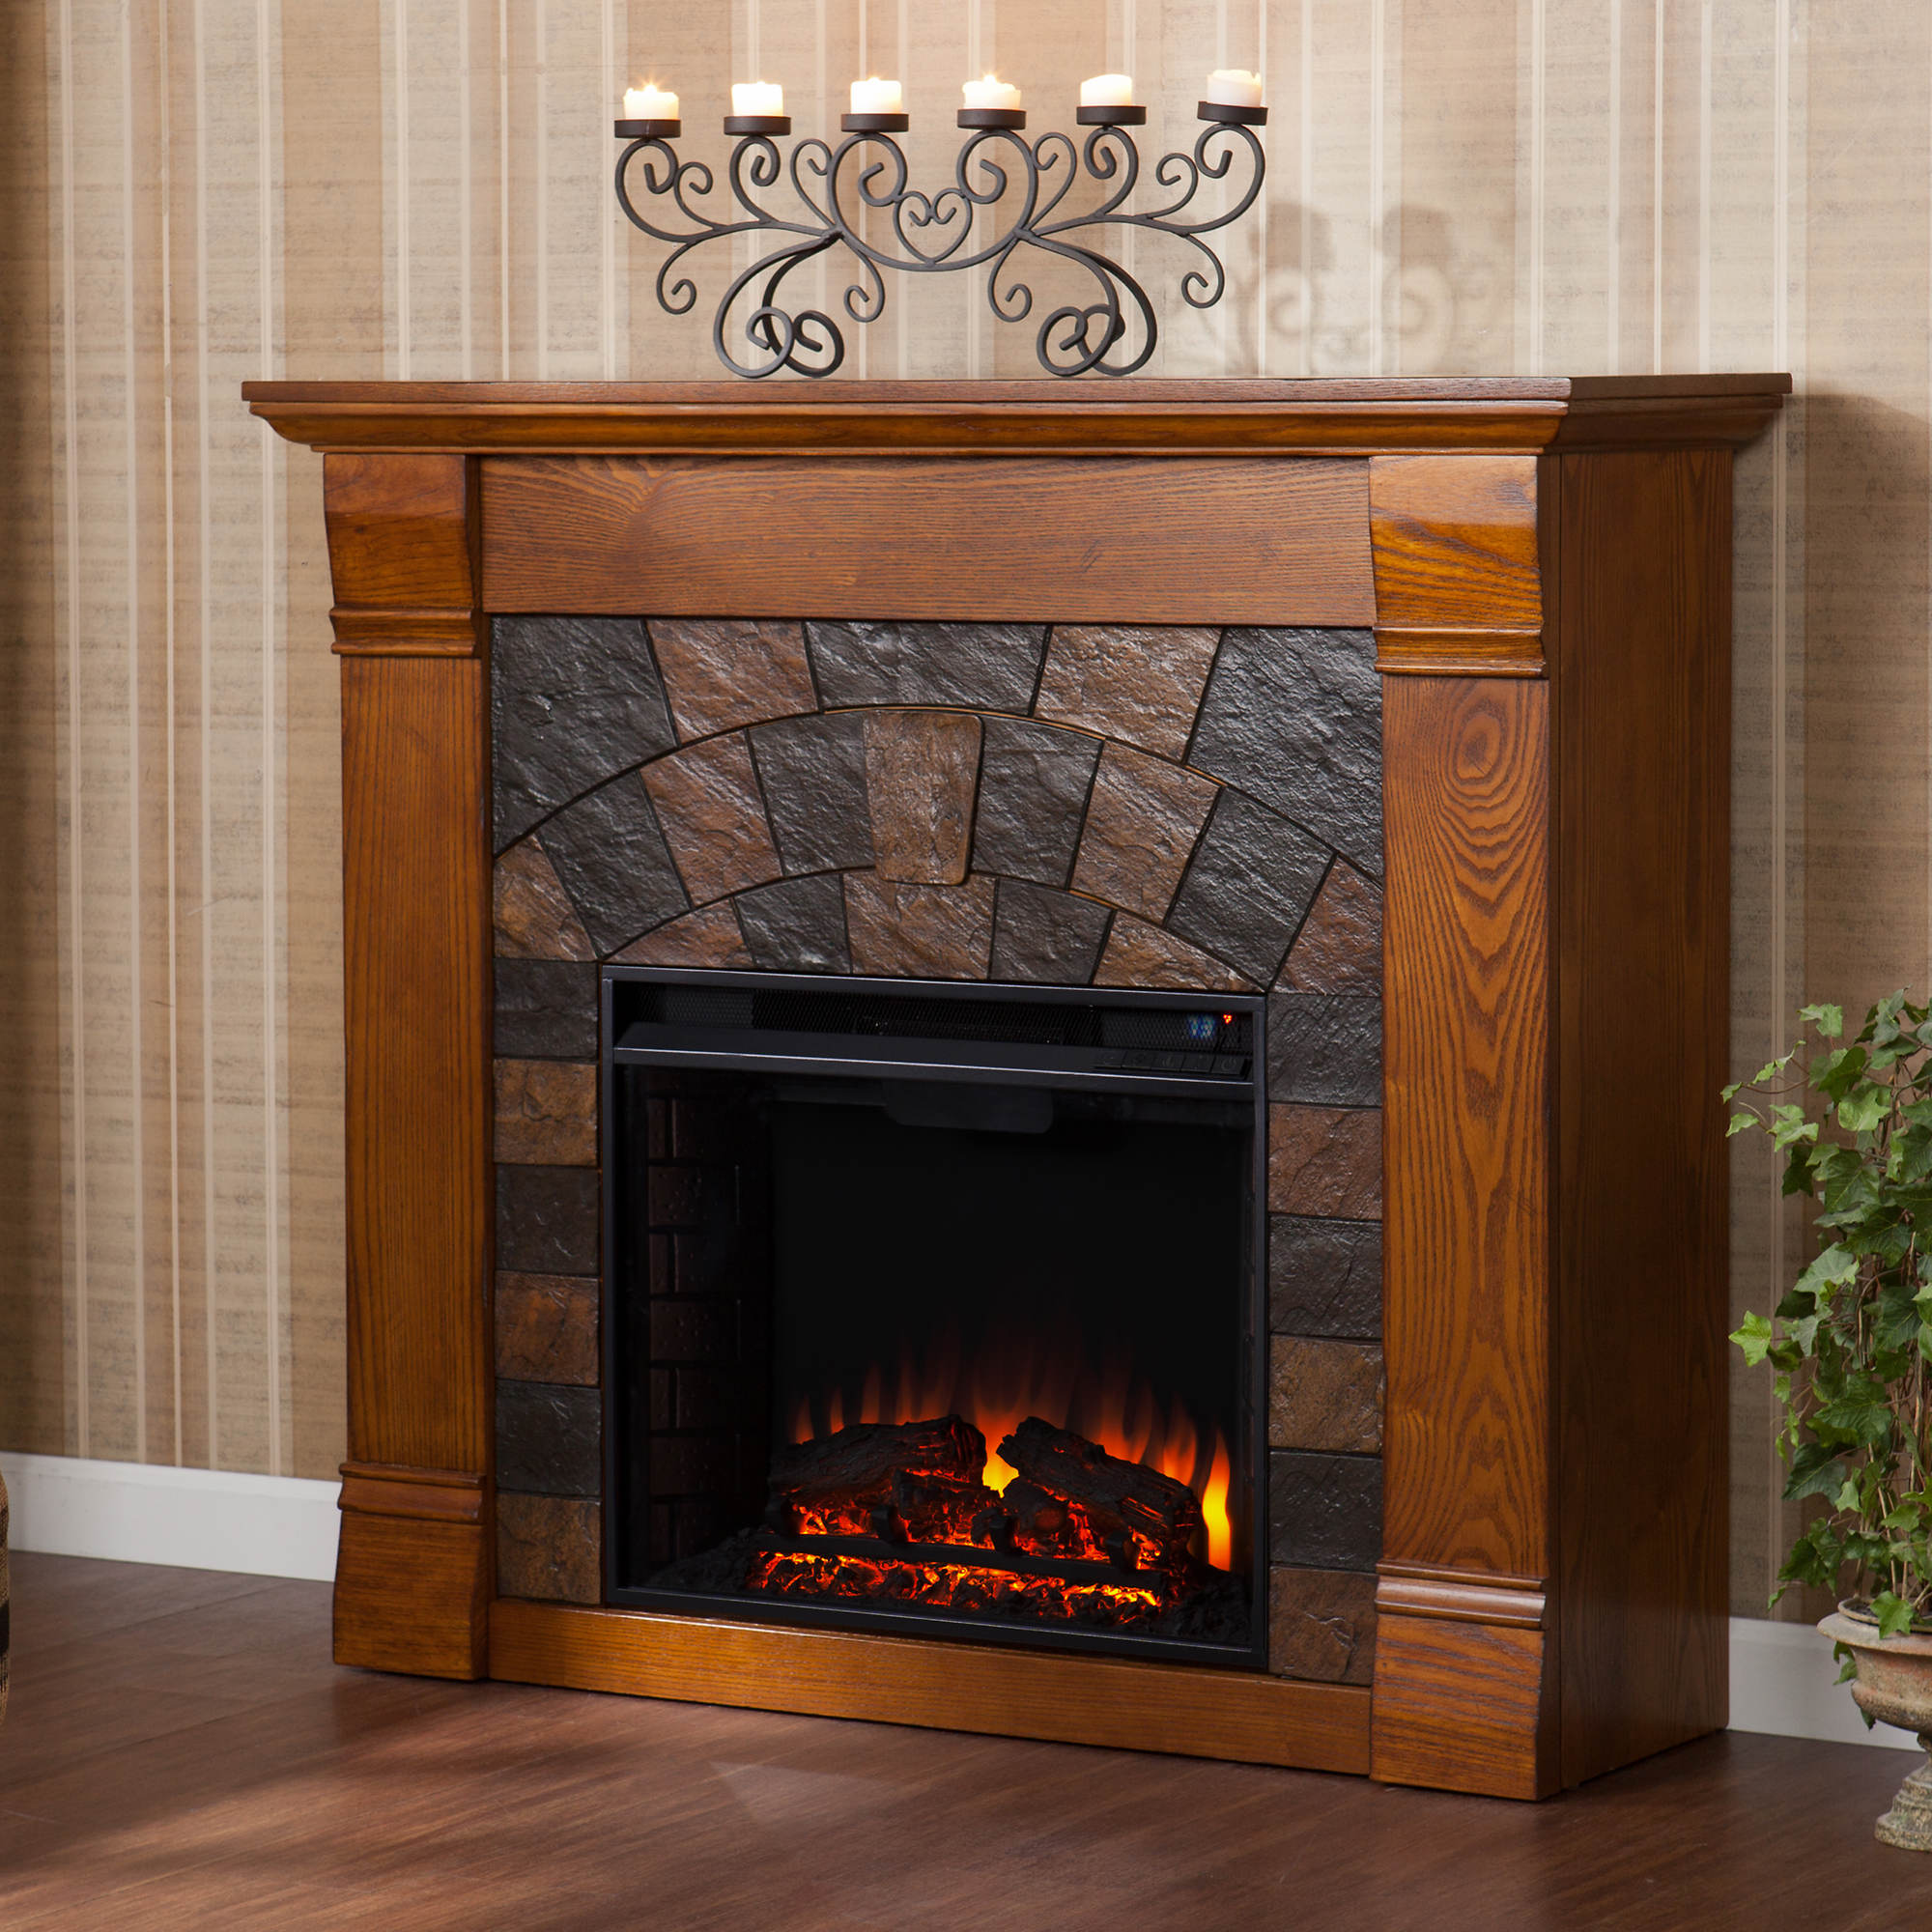 Fireplace tv stand electric fireplaces in arizona electric fireplace - Sei Winter Haven Electric Fireplace Salem Antique Oak